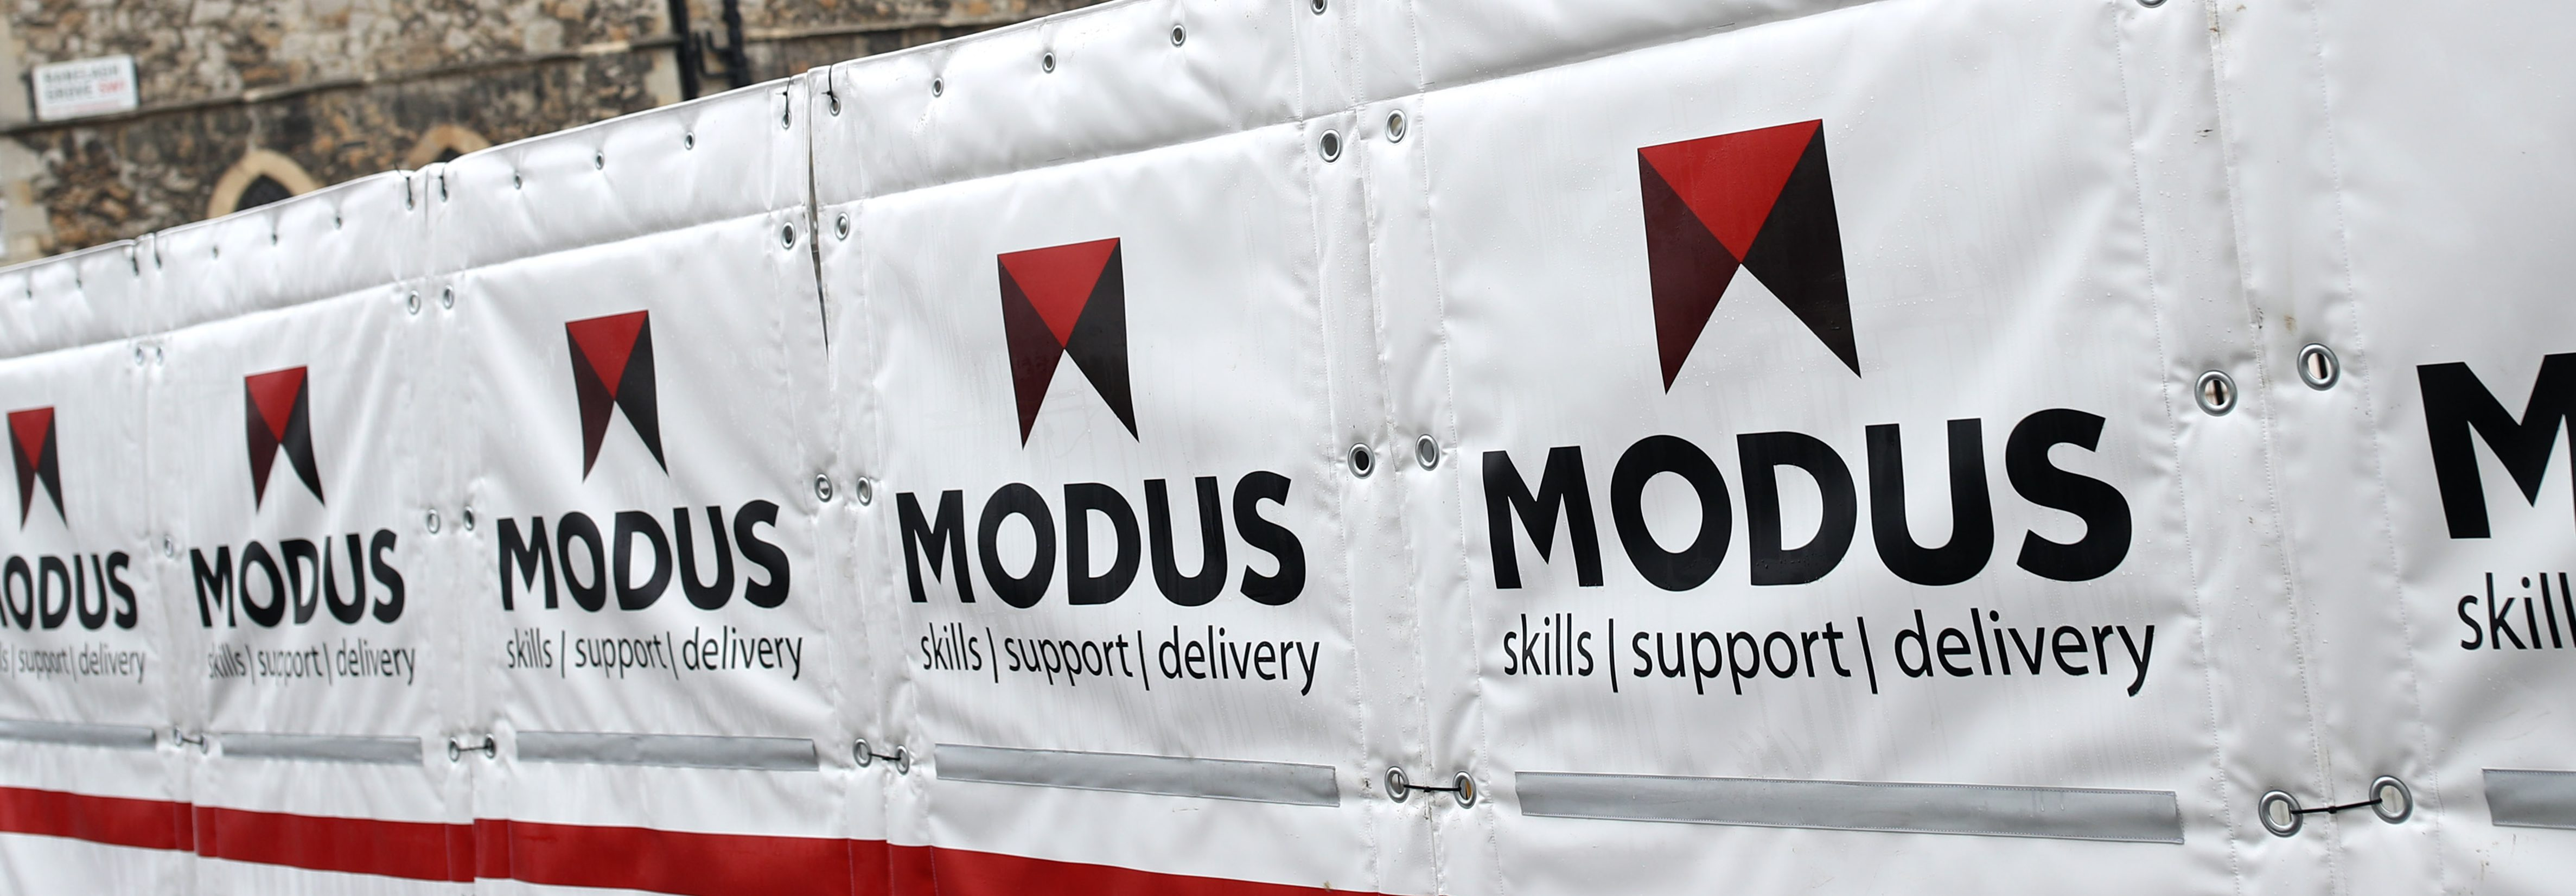 modus-banners